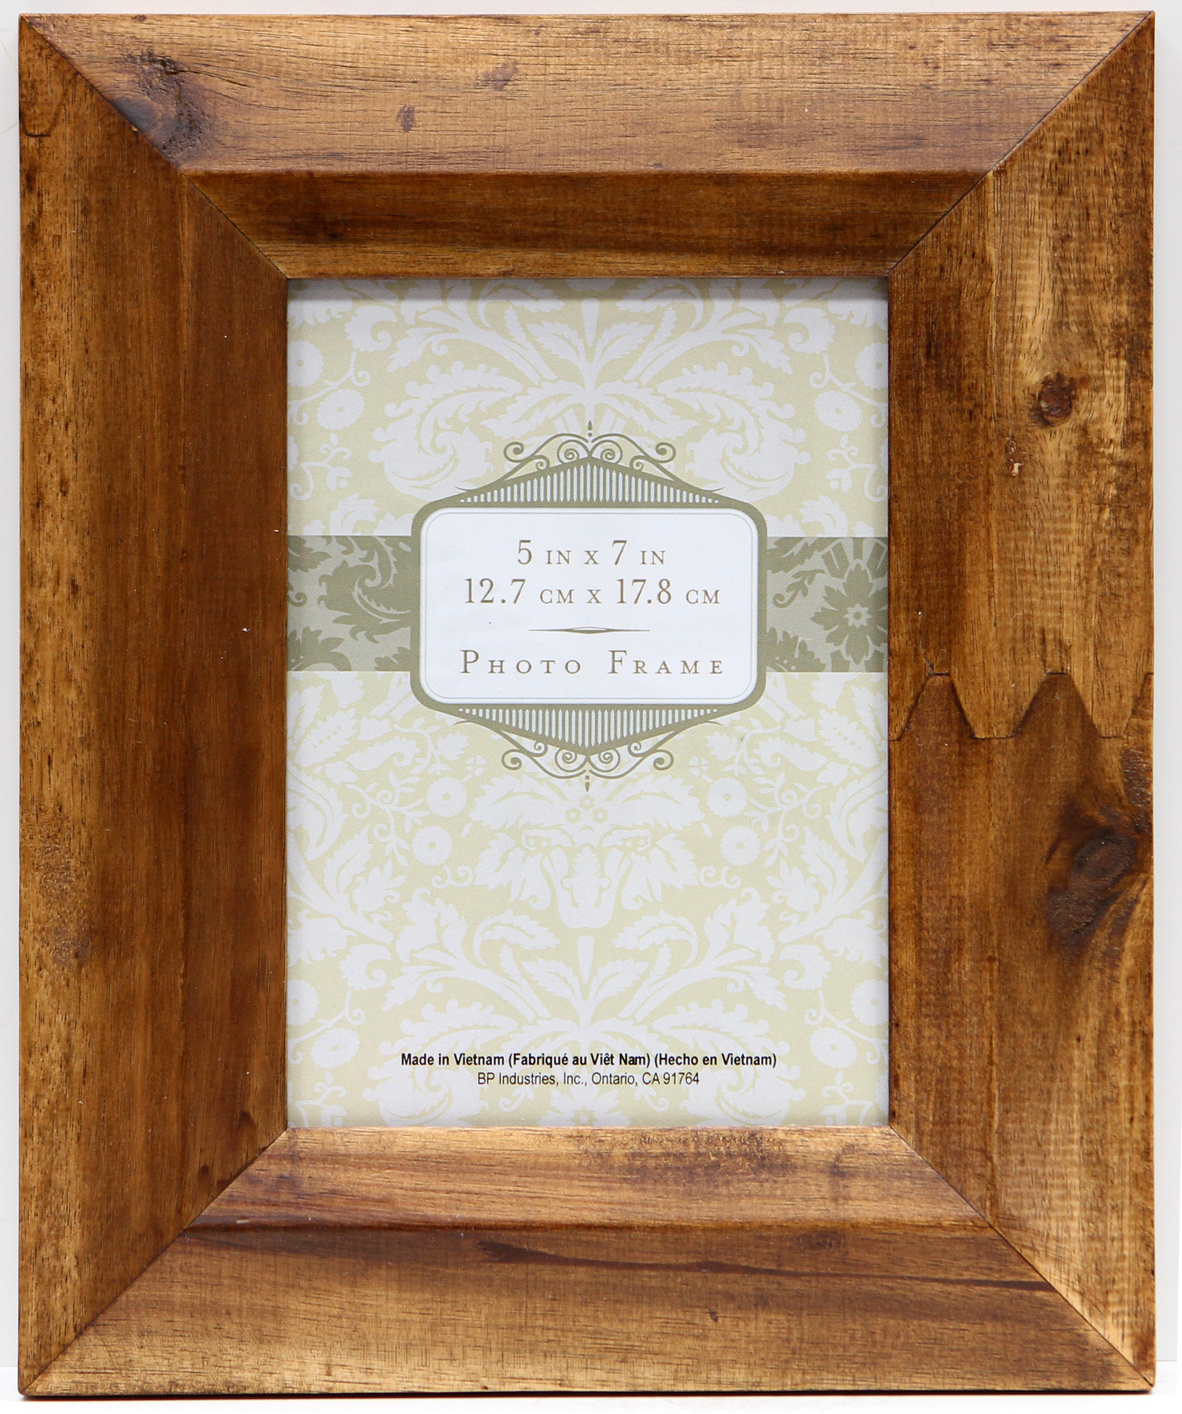 acacia wood frame 5x7 brown wedge - Wood Picture Frames